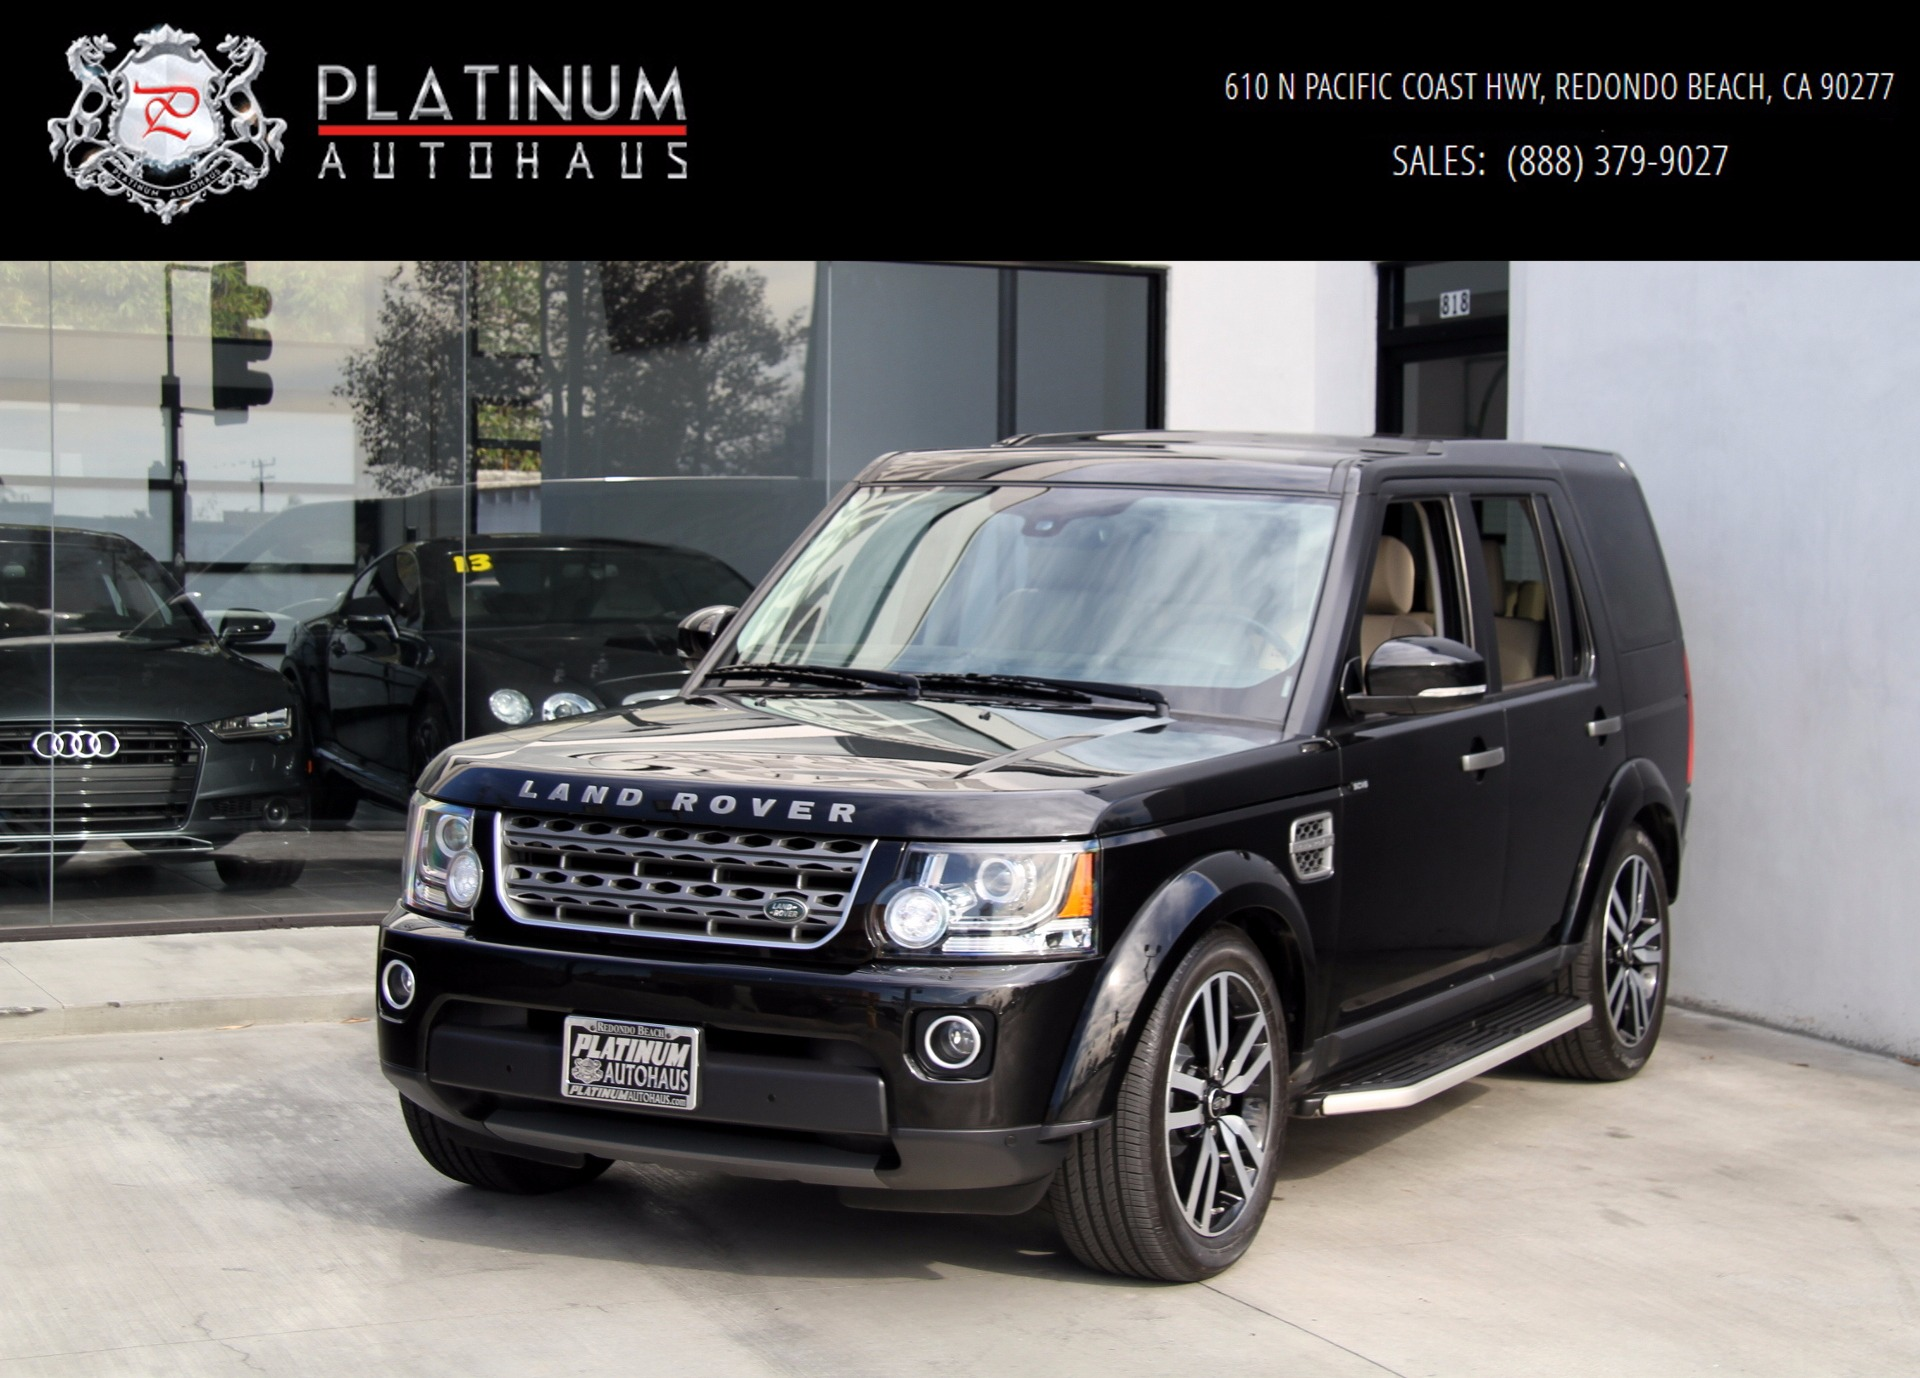 2015 land rover lr4 hse stock 6046 for sale near redondo beach ca ca land rover dealer. Black Bedroom Furniture Sets. Home Design Ideas